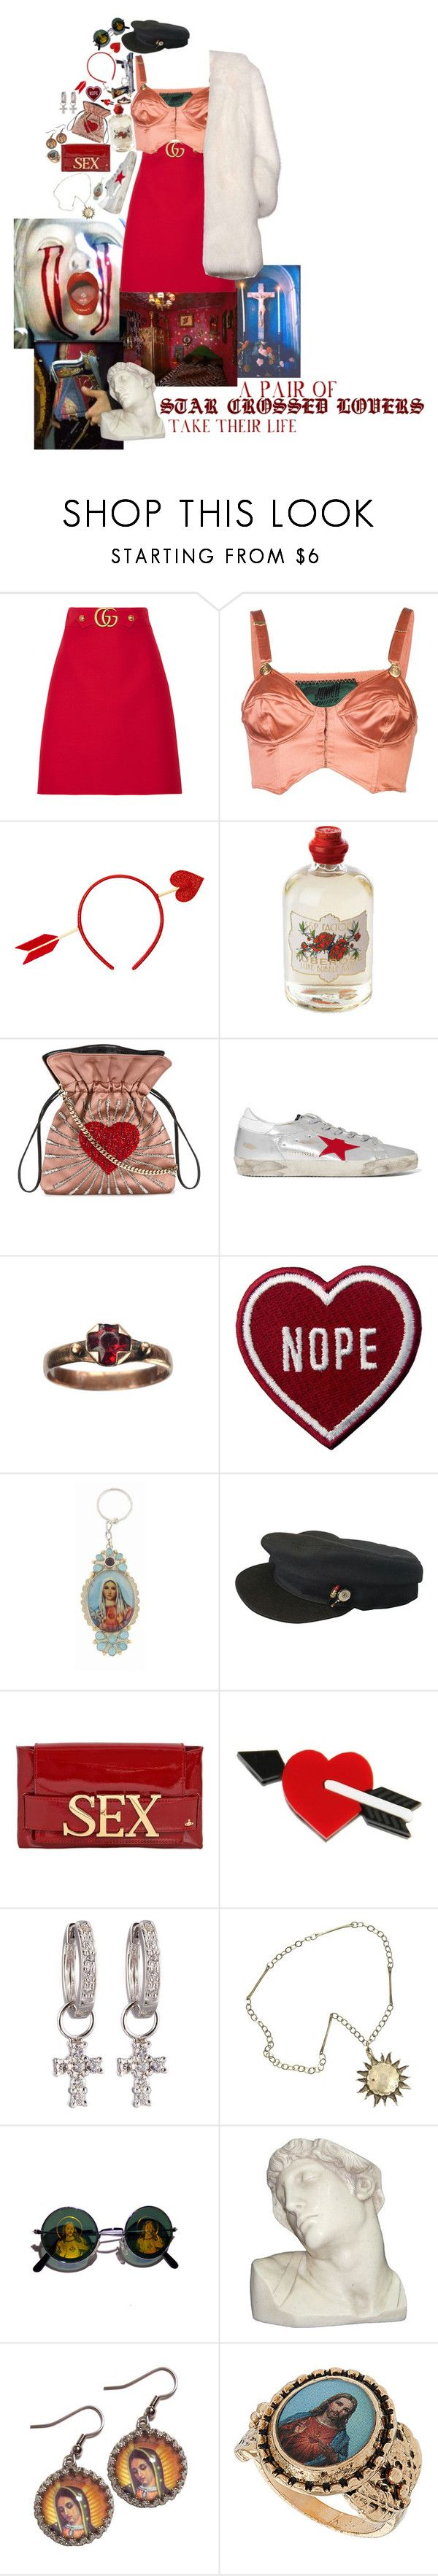 """""""Untitled #596"""" by blueb0y ❤ liked on Polyvore featuring Balenciaga, Gucci, Jean-Paul Gaultier, Soap & Paper Factory, Les Petits Joueurs, Golden Goose, Virgins Saints & Angels, Chanel, Vivienne Westwood and Derek Lam"""